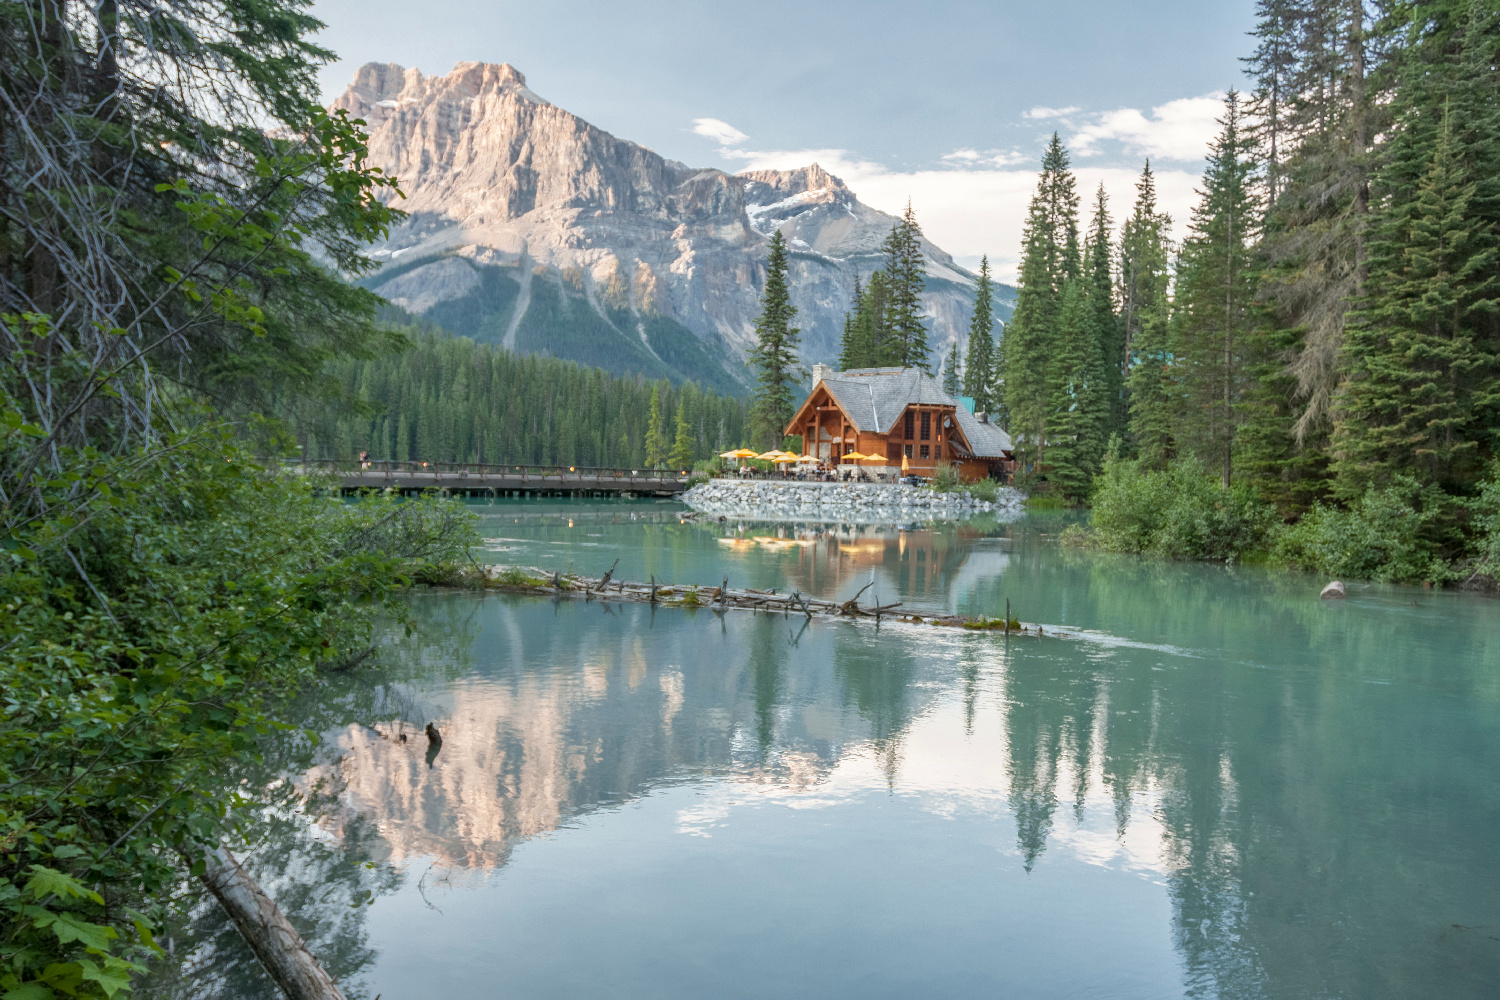 Kanada Alberta Emerald Lake Lodge Smaragd Lake ©123RF